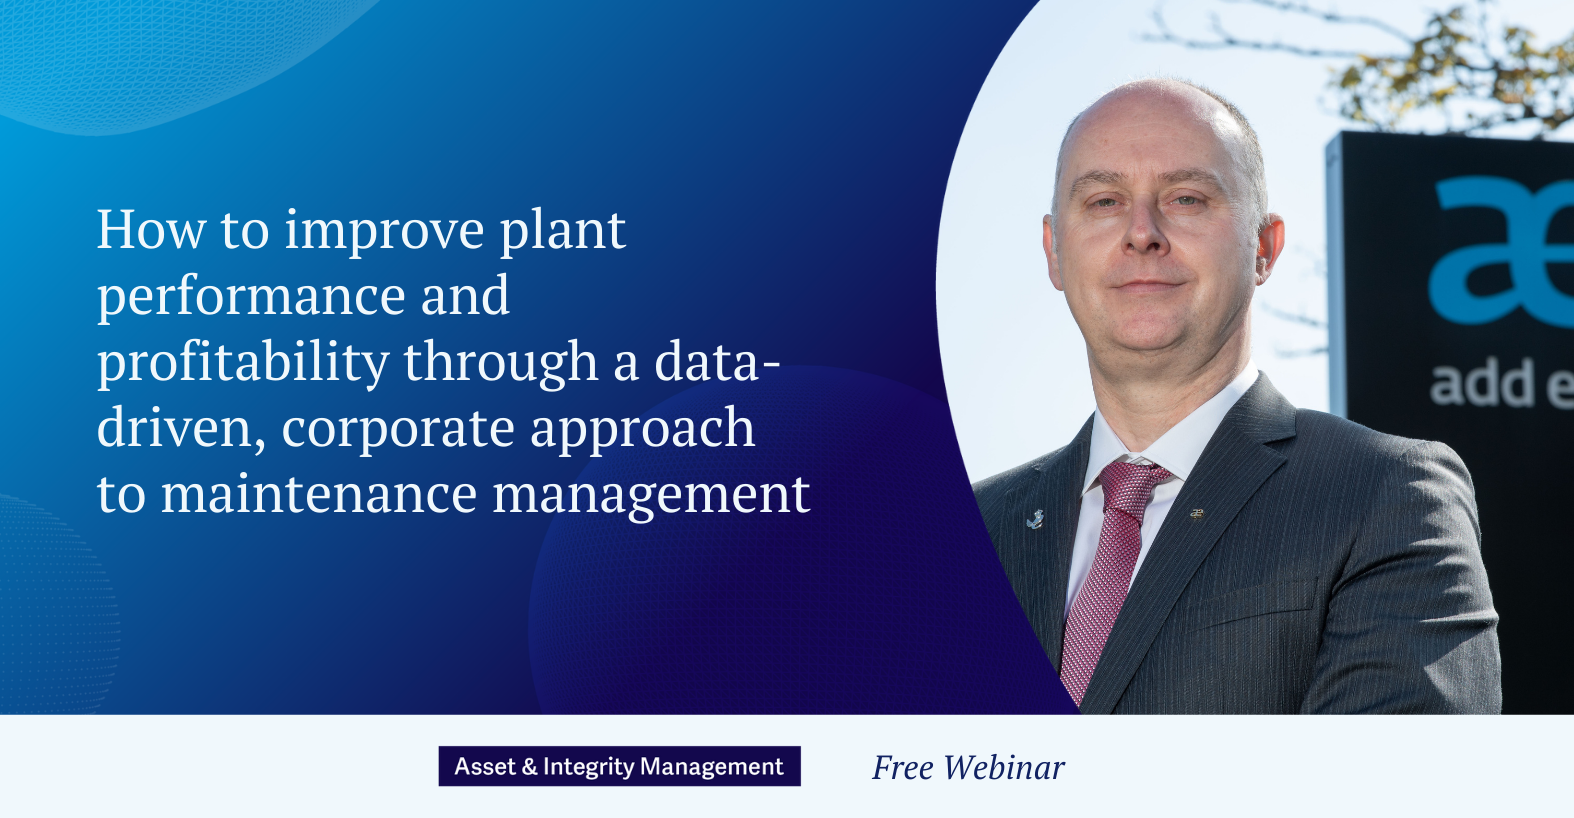 How to improveplant performance and profitability through a data-driven, corporateapproach to maintenancemanagement